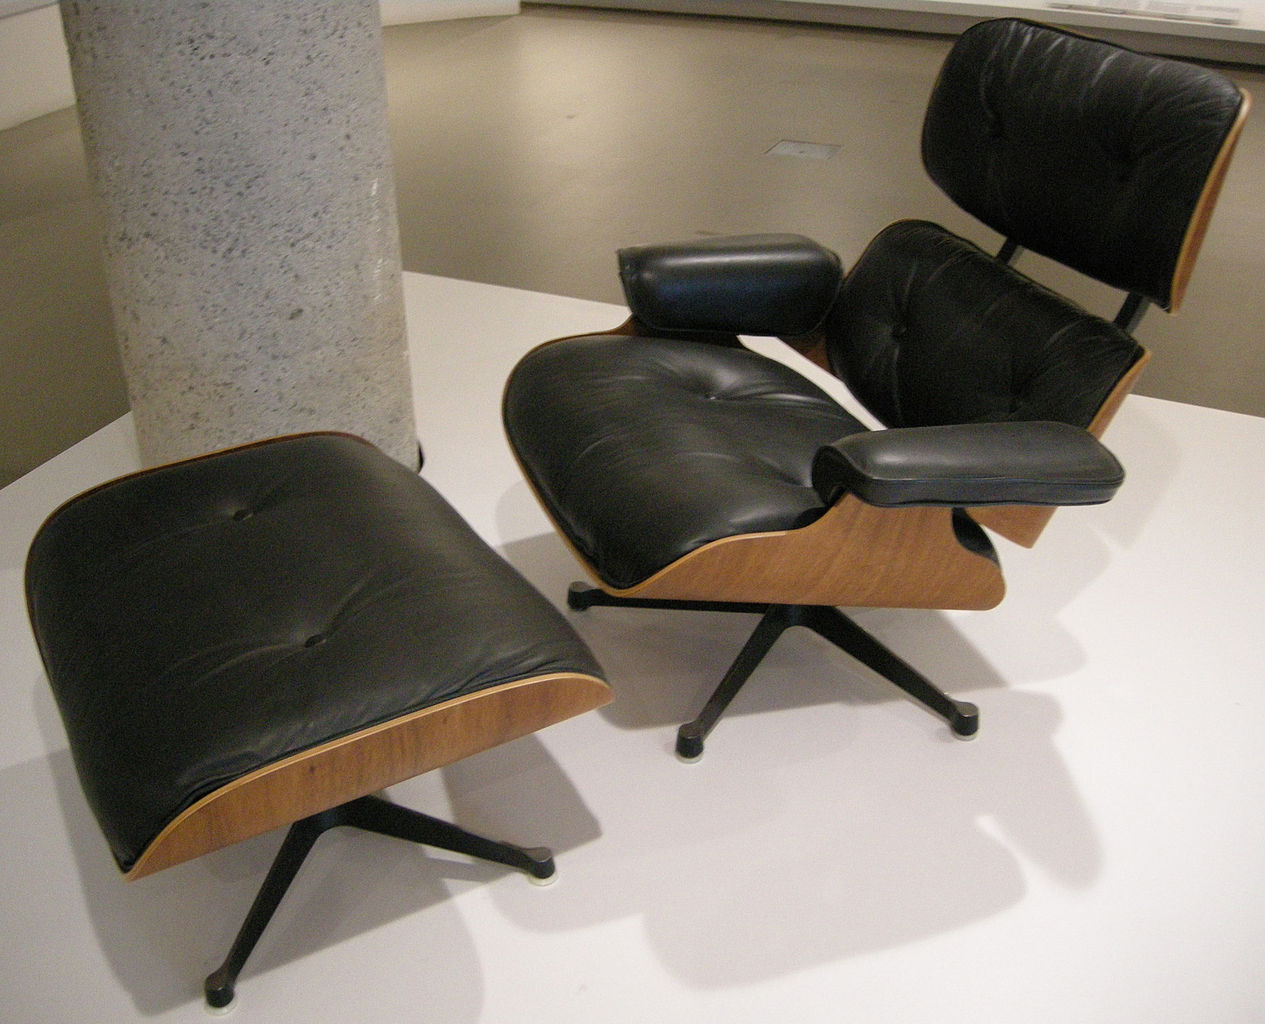 file ngv design charles eames and herman miller lounge chair 670 1956 jpg wikimedia commons. Black Bedroom Furniture Sets. Home Design Ideas